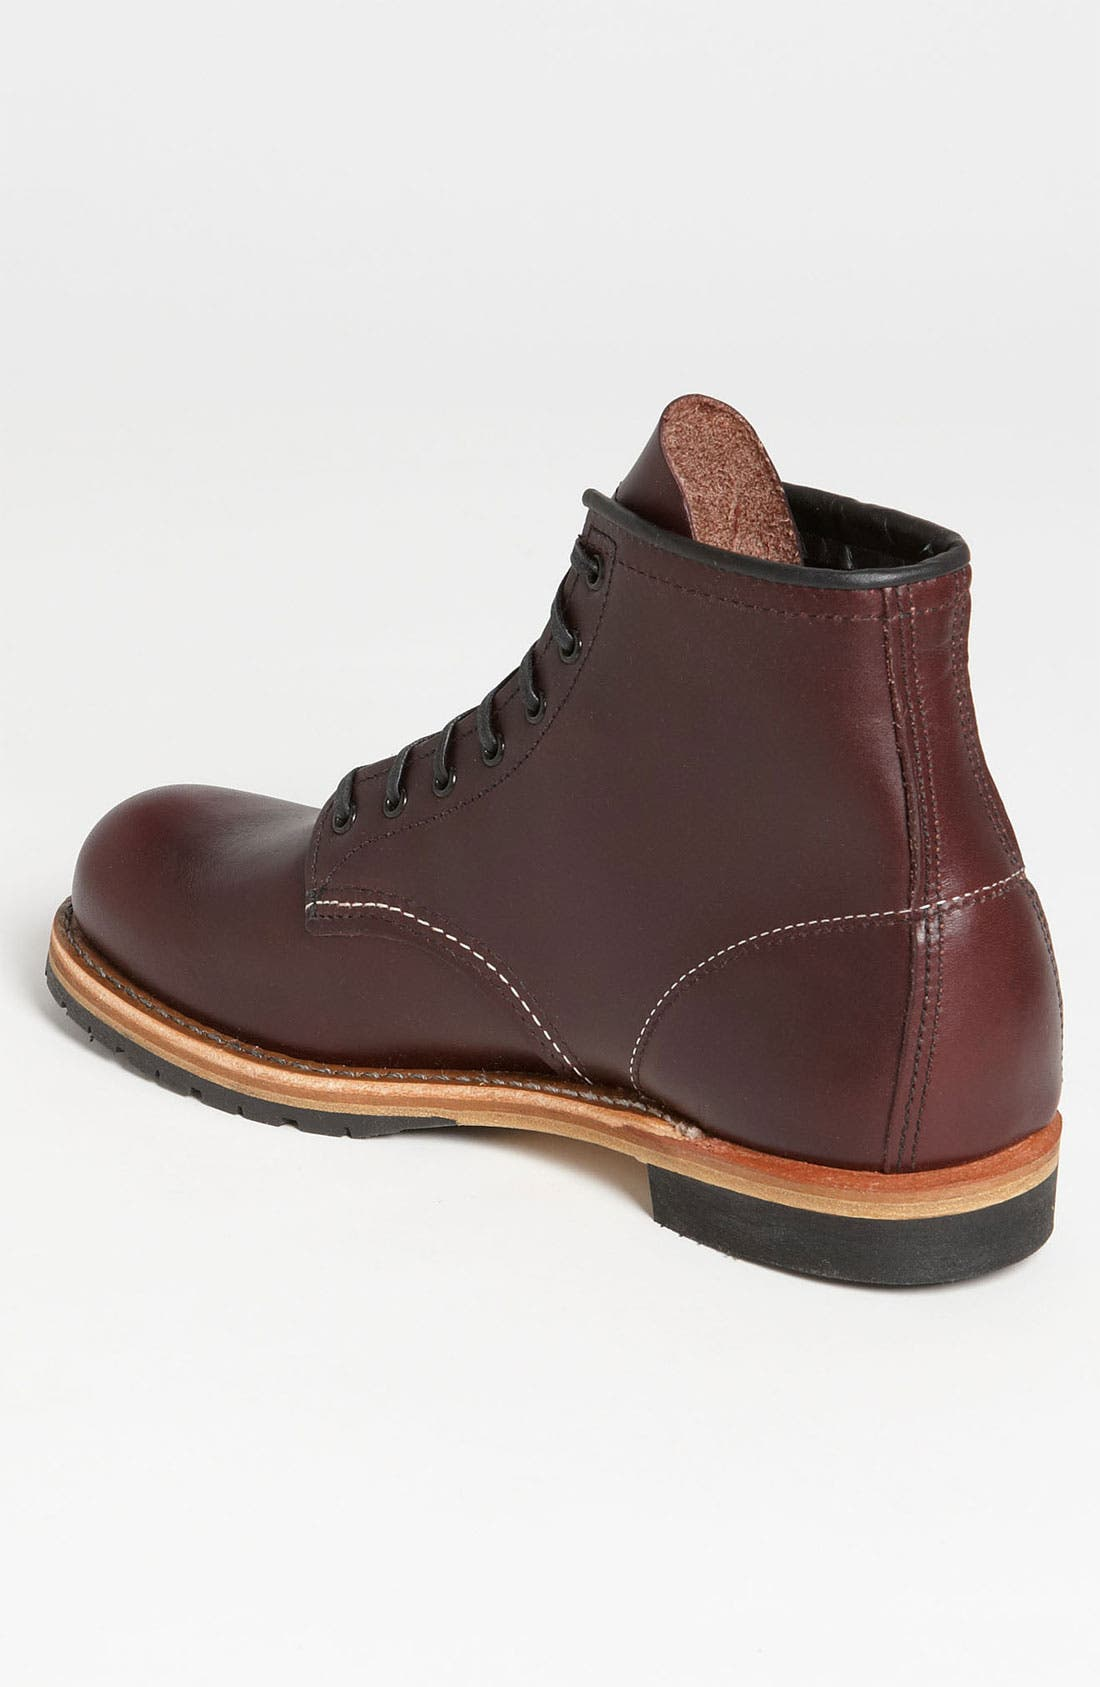 Alternate Image 2  - Red Wing 'Beckman' Round Toe Boot (Online Exclusive)